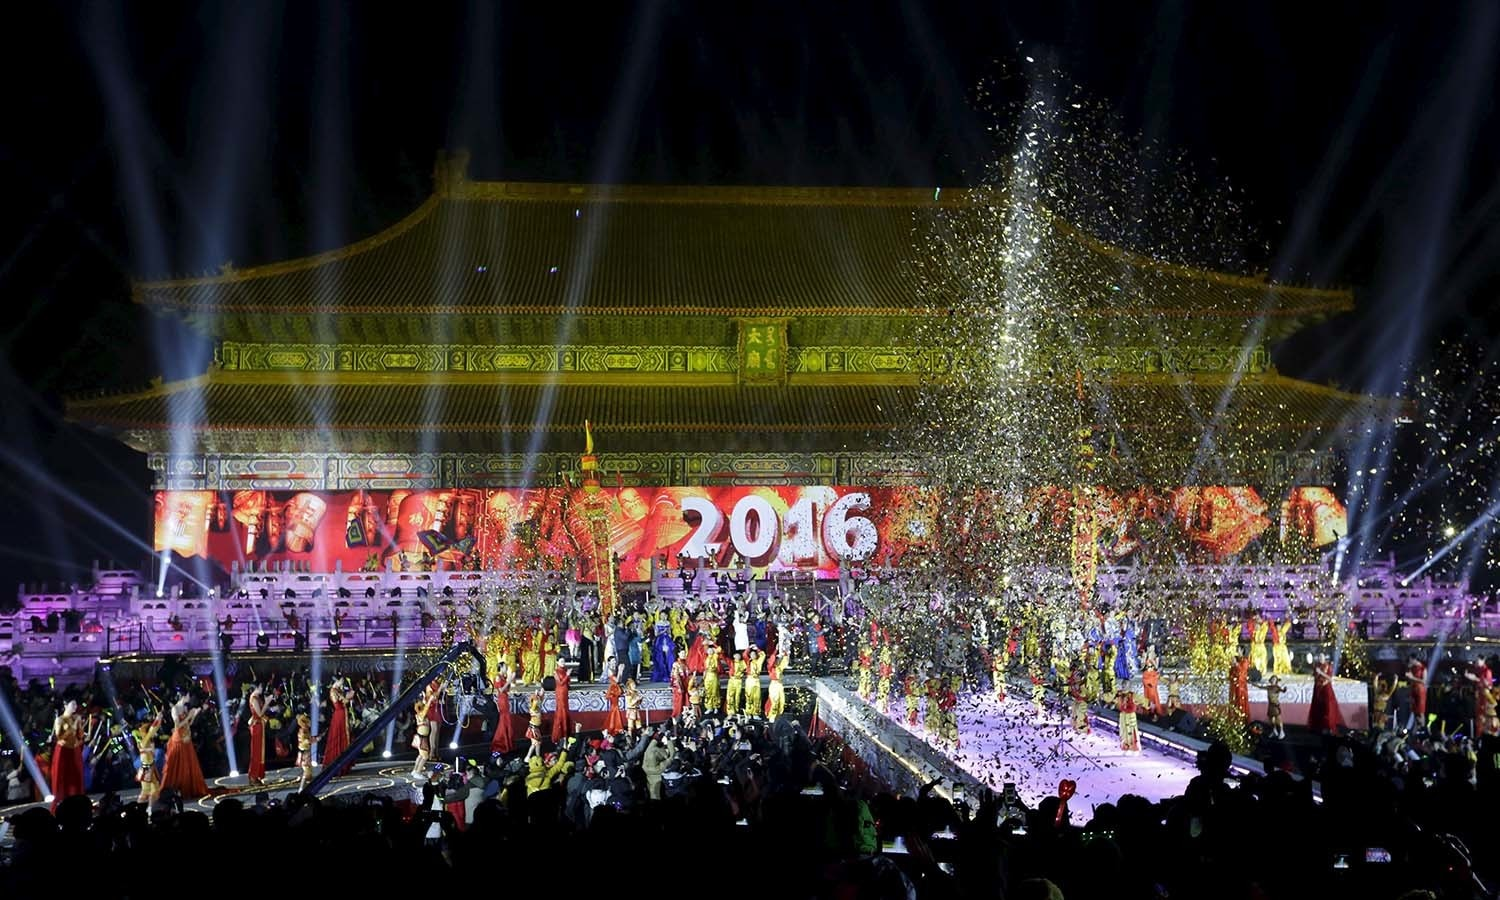 Dancers perform to celebrate the new year during a countdown event at Tai Miao, the imperial ancestral temple in the Forbidden City, in Beijing, China, January 1, 2016. REUTERS/Jason Lee